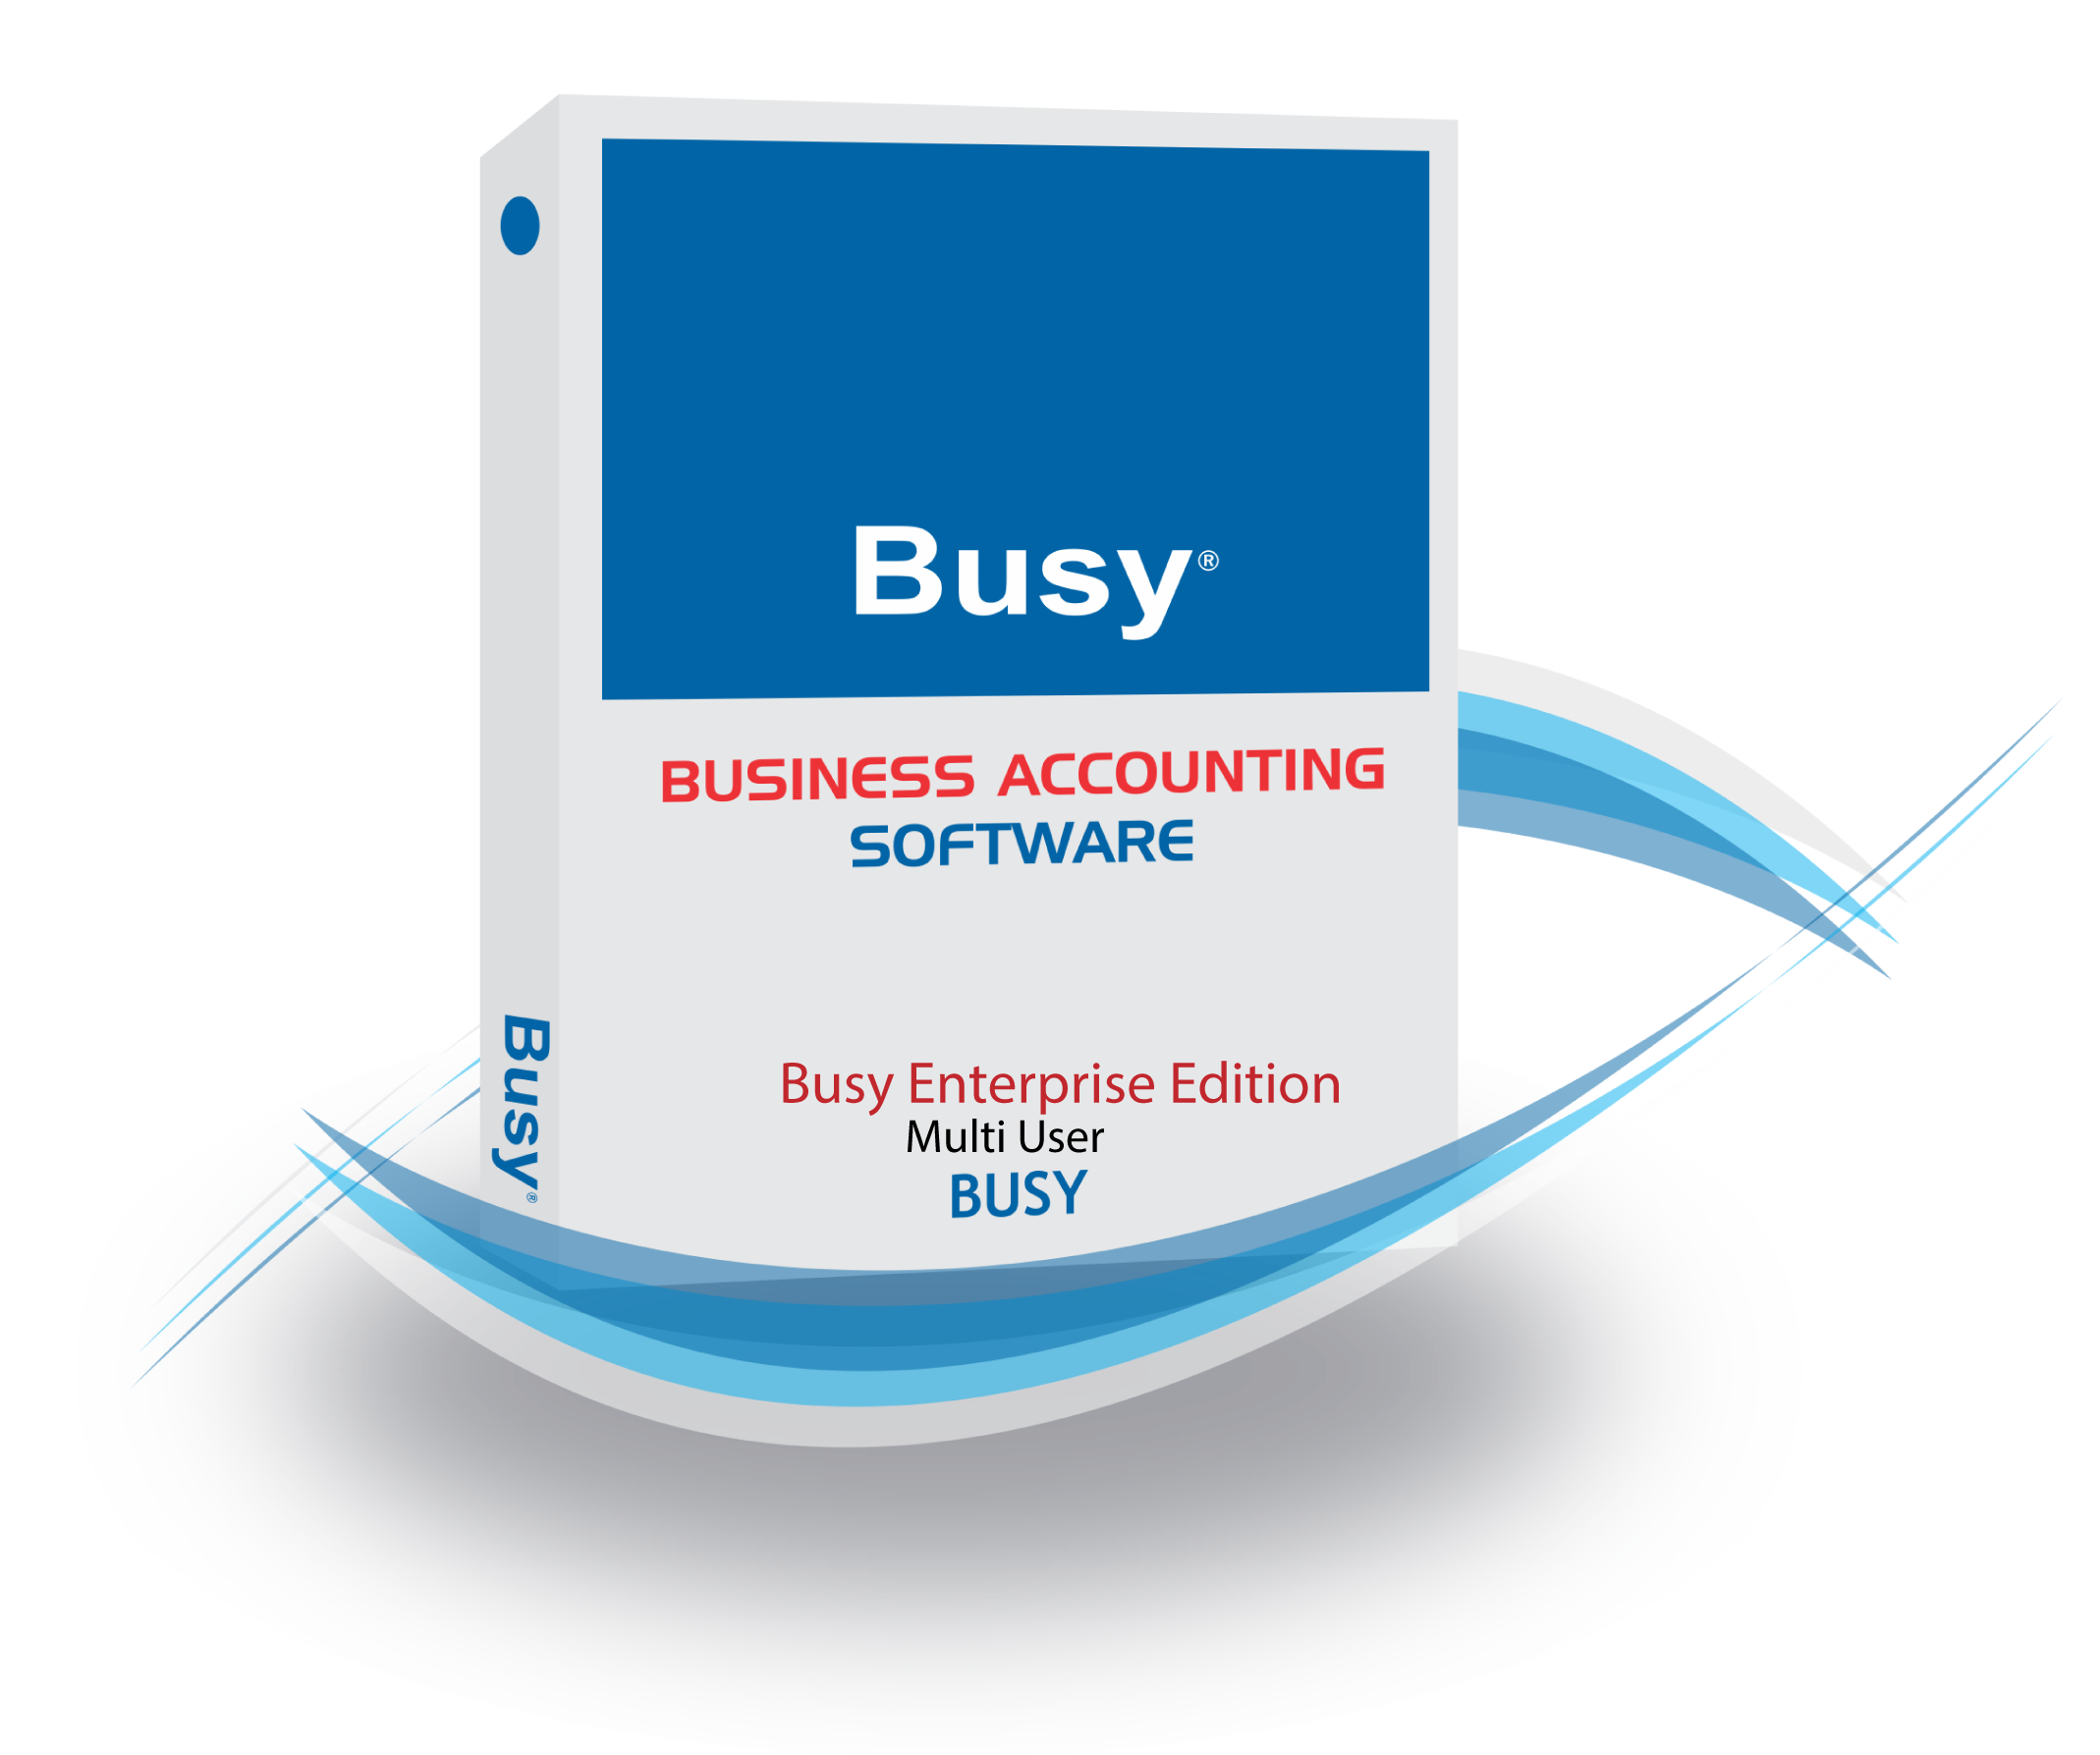 Busy enterprise edition